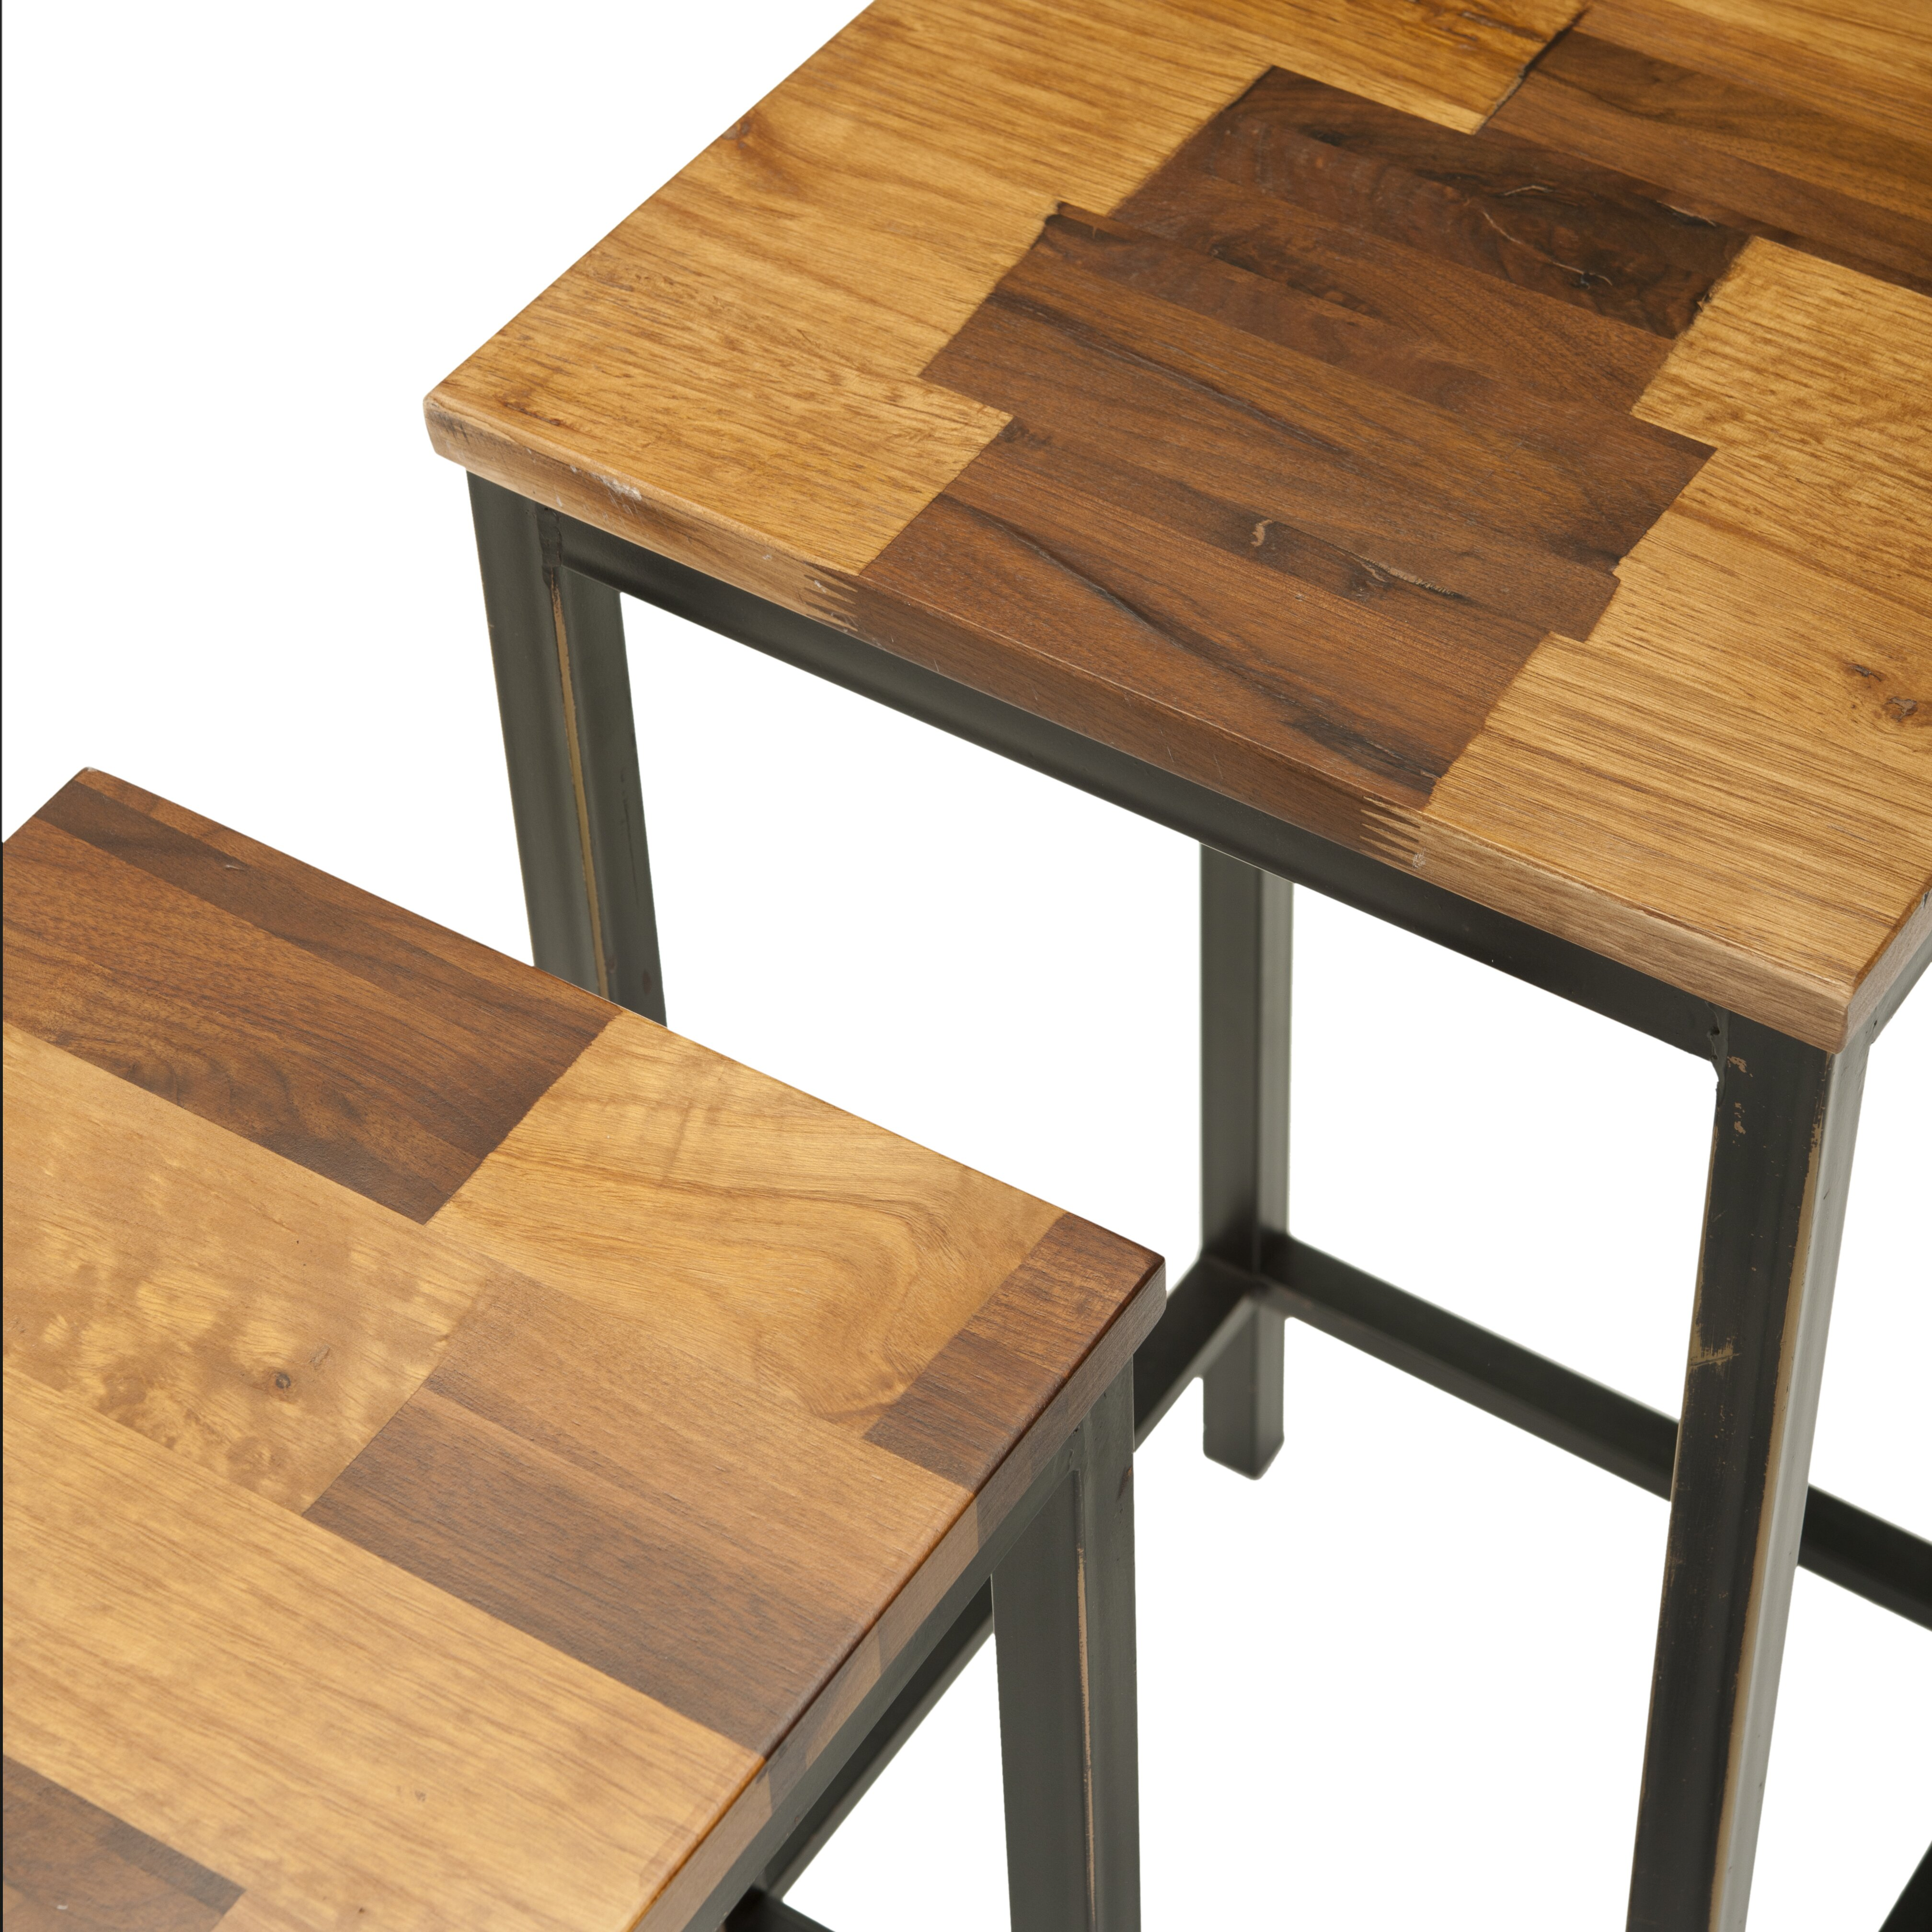 Safavieh Ivan 2 Piece Nesting Tables & Reviews Wayfair. Full resolution  photo, nominally Width 4032 Height 4032 pixels, photo with #A46D27.